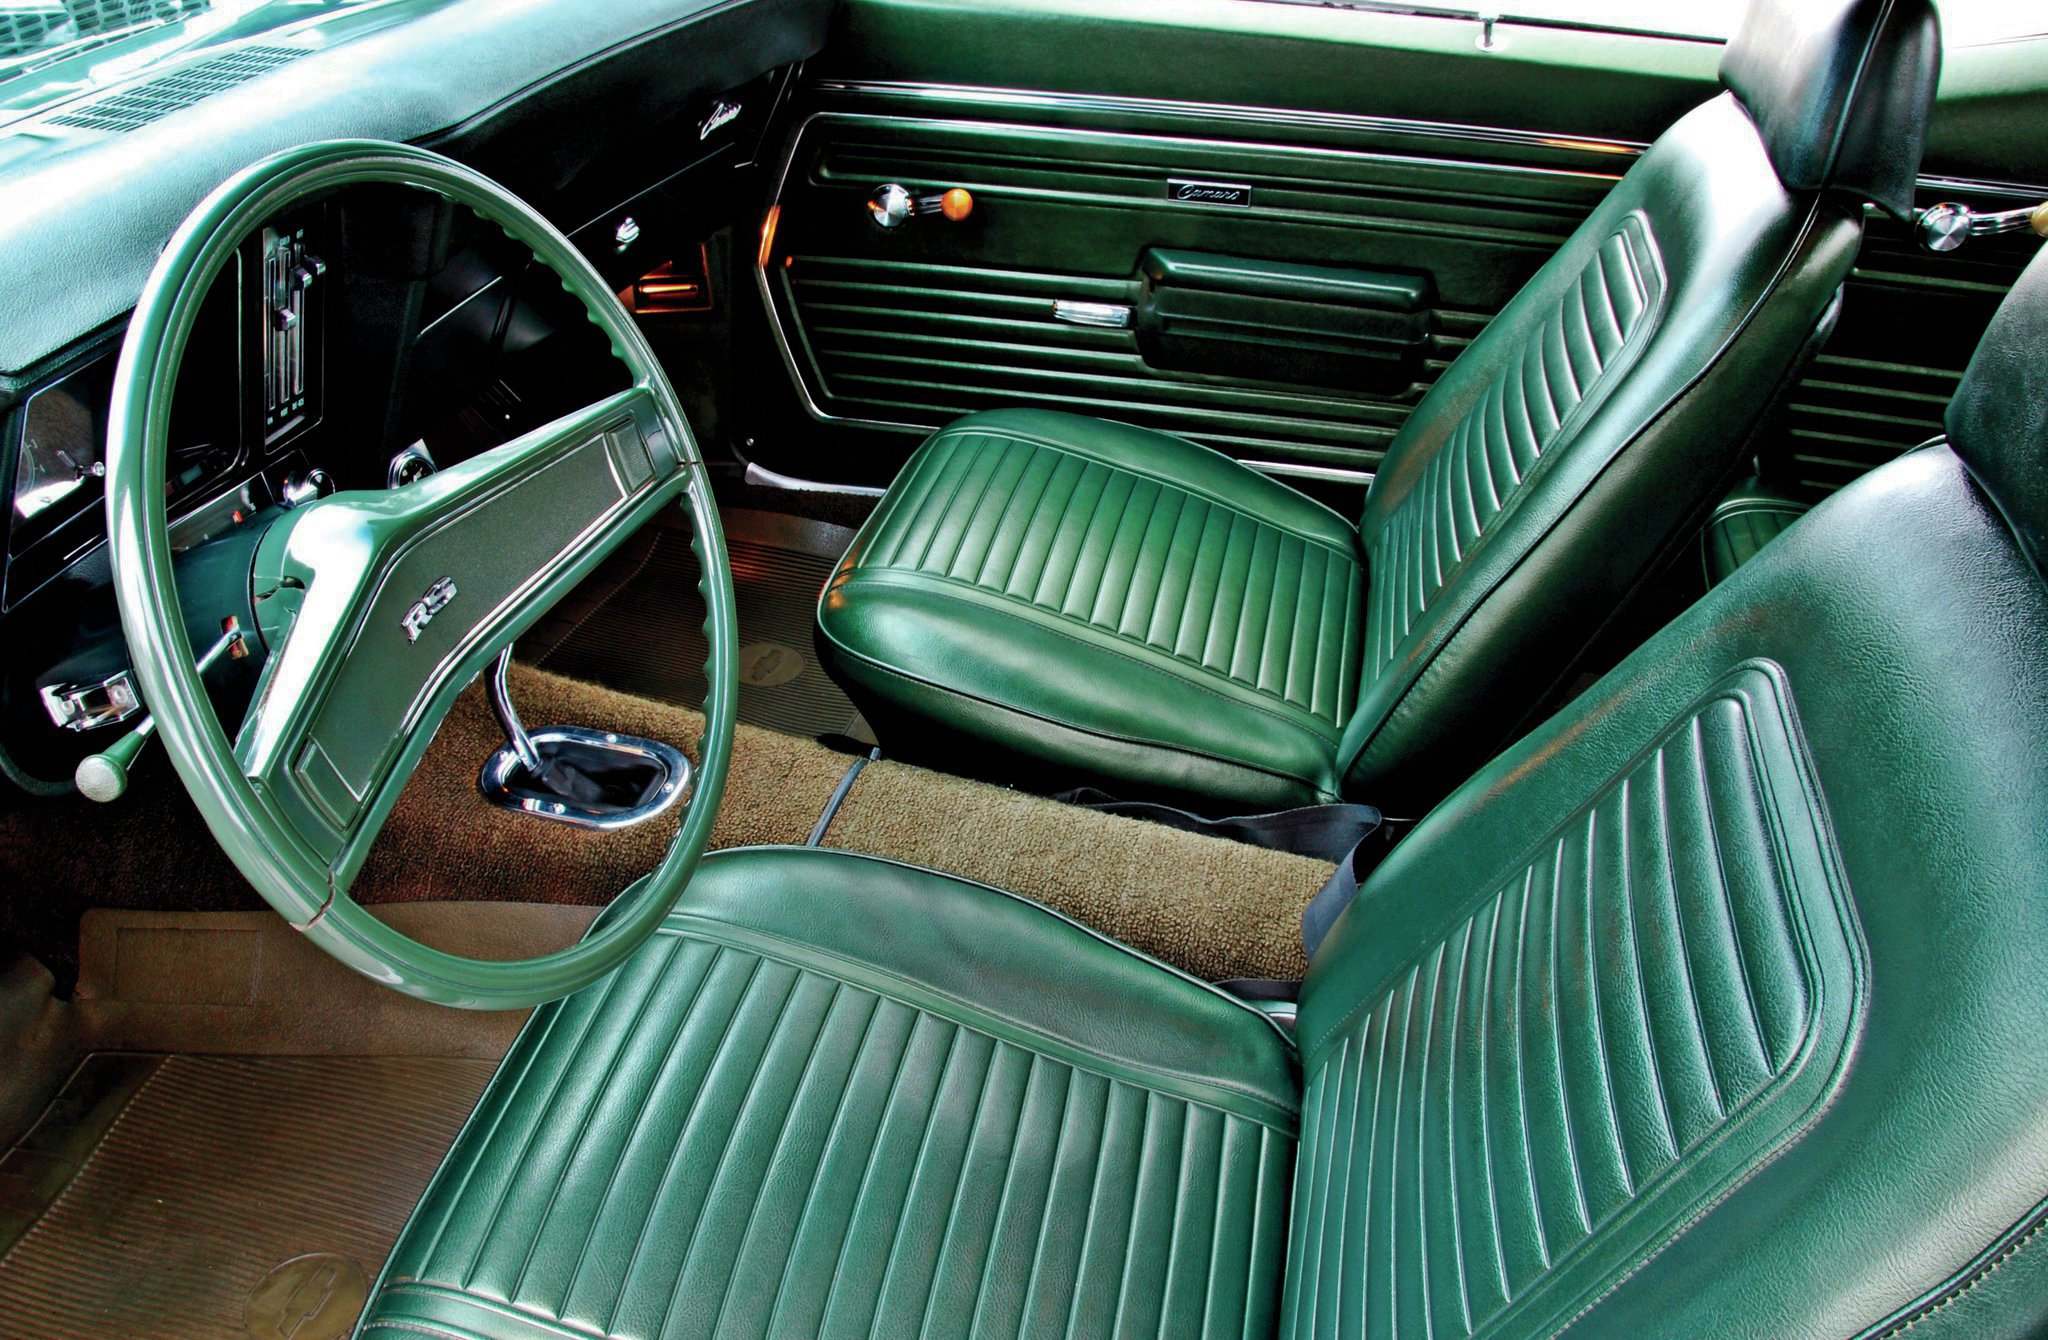 The faded carpet is about the only tipoff to the interior's original condition. The vinyl seats are in mint condition.